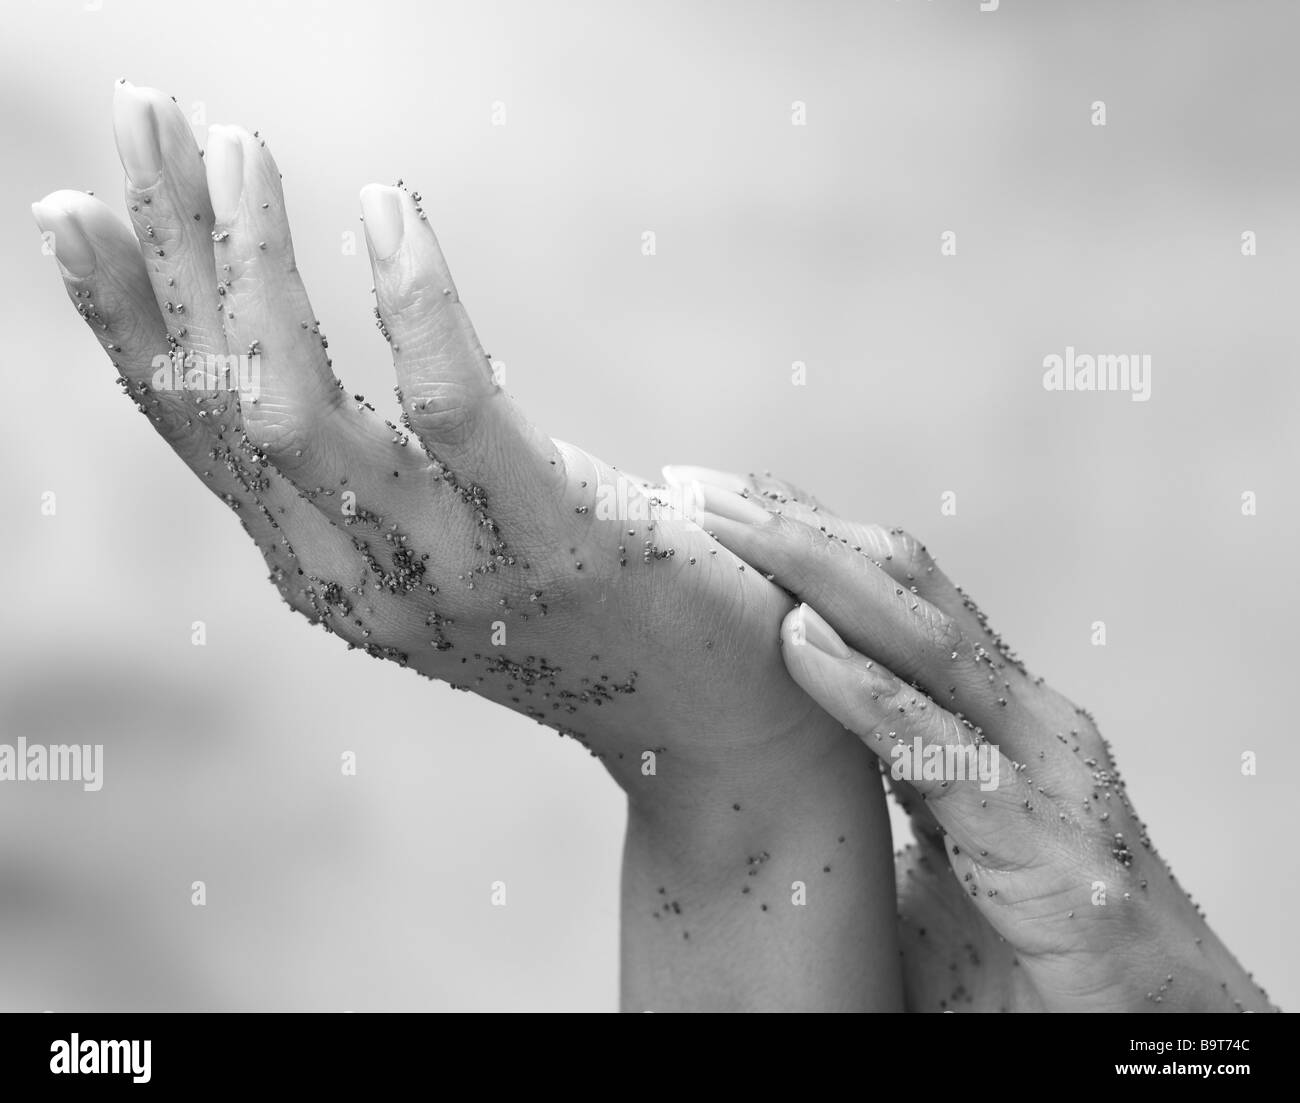 pair of hands rubbing exfoliator in during a beauty treatment - Stock Image